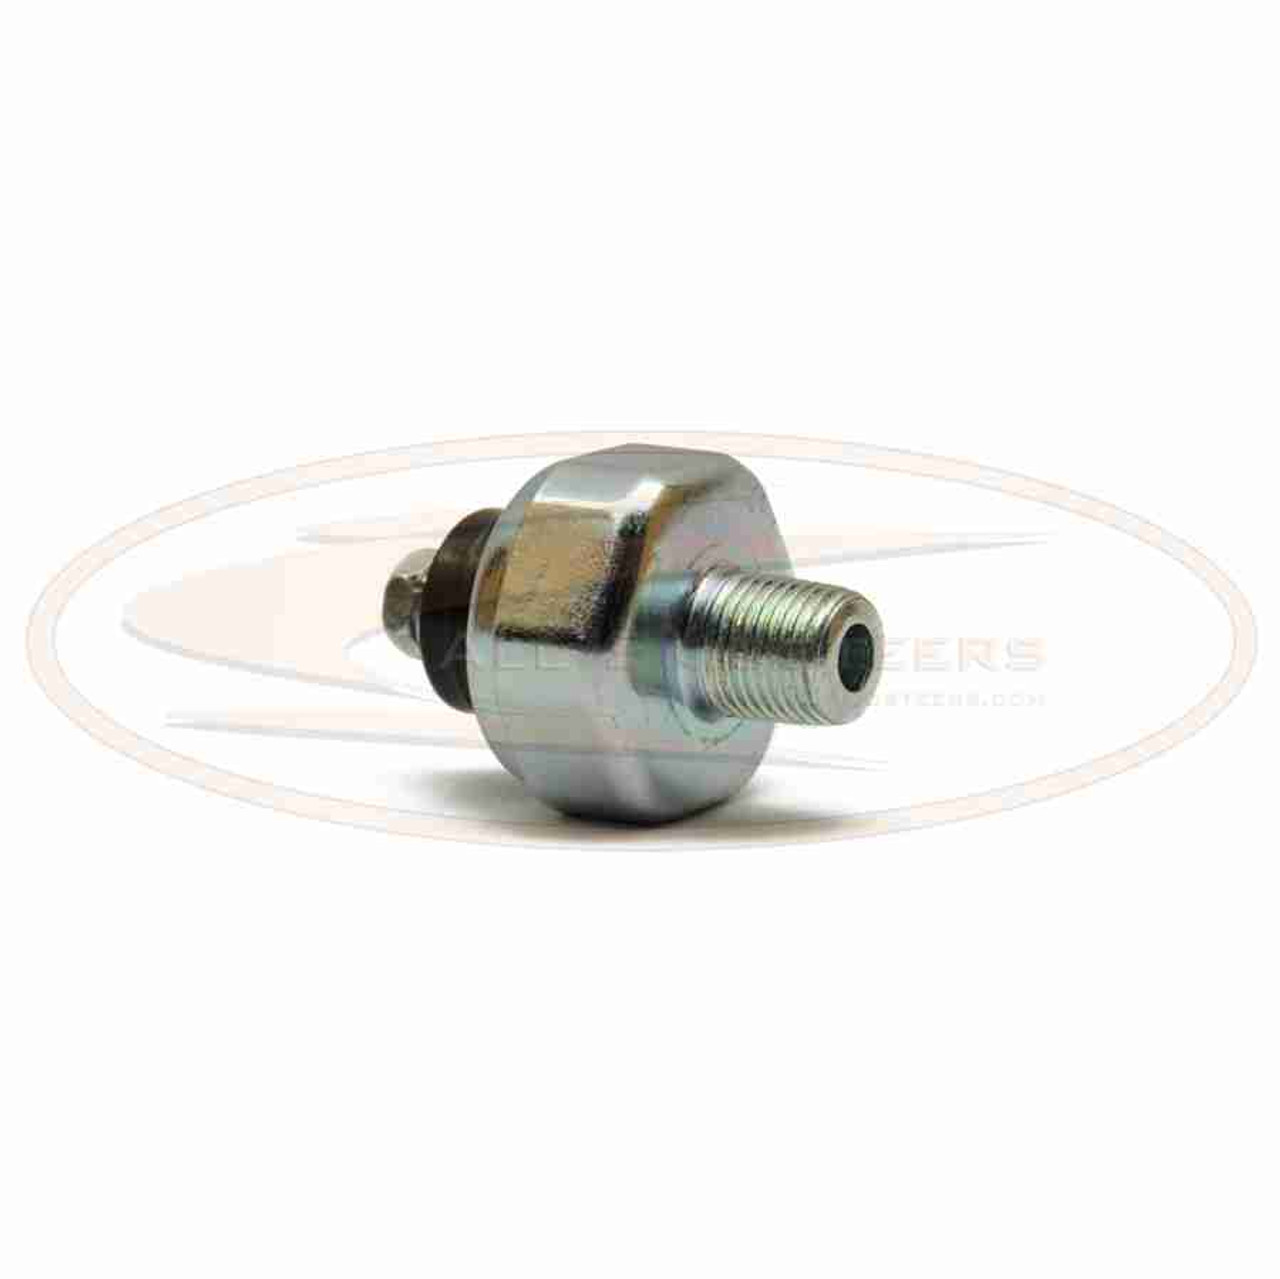 Engine Oil Pressure Switch For Bobcat Replaces Oem 6969775 All Skidsteers Inc